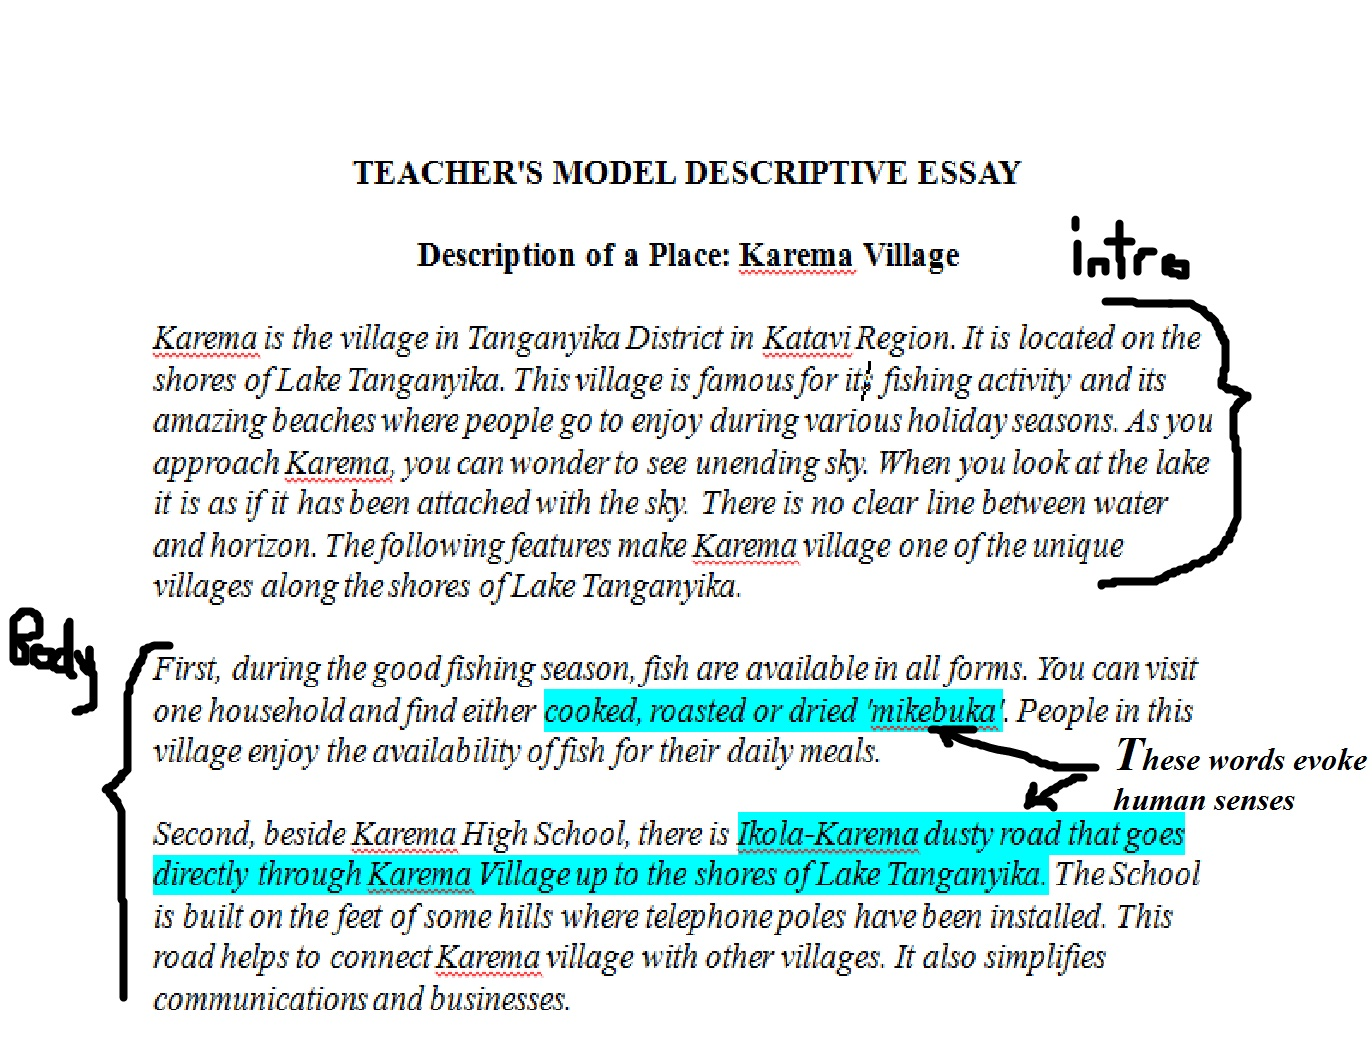 Essay About Philosophy How To Teach Writing Descriptive Compositionsessays Of Not Less Then   Words In Form Three Essay On Lowering The Drinking Age also Capital Punishment Against Essay O Level English Blog How To Teach Writing Descriptive  Attention Getter For Essay